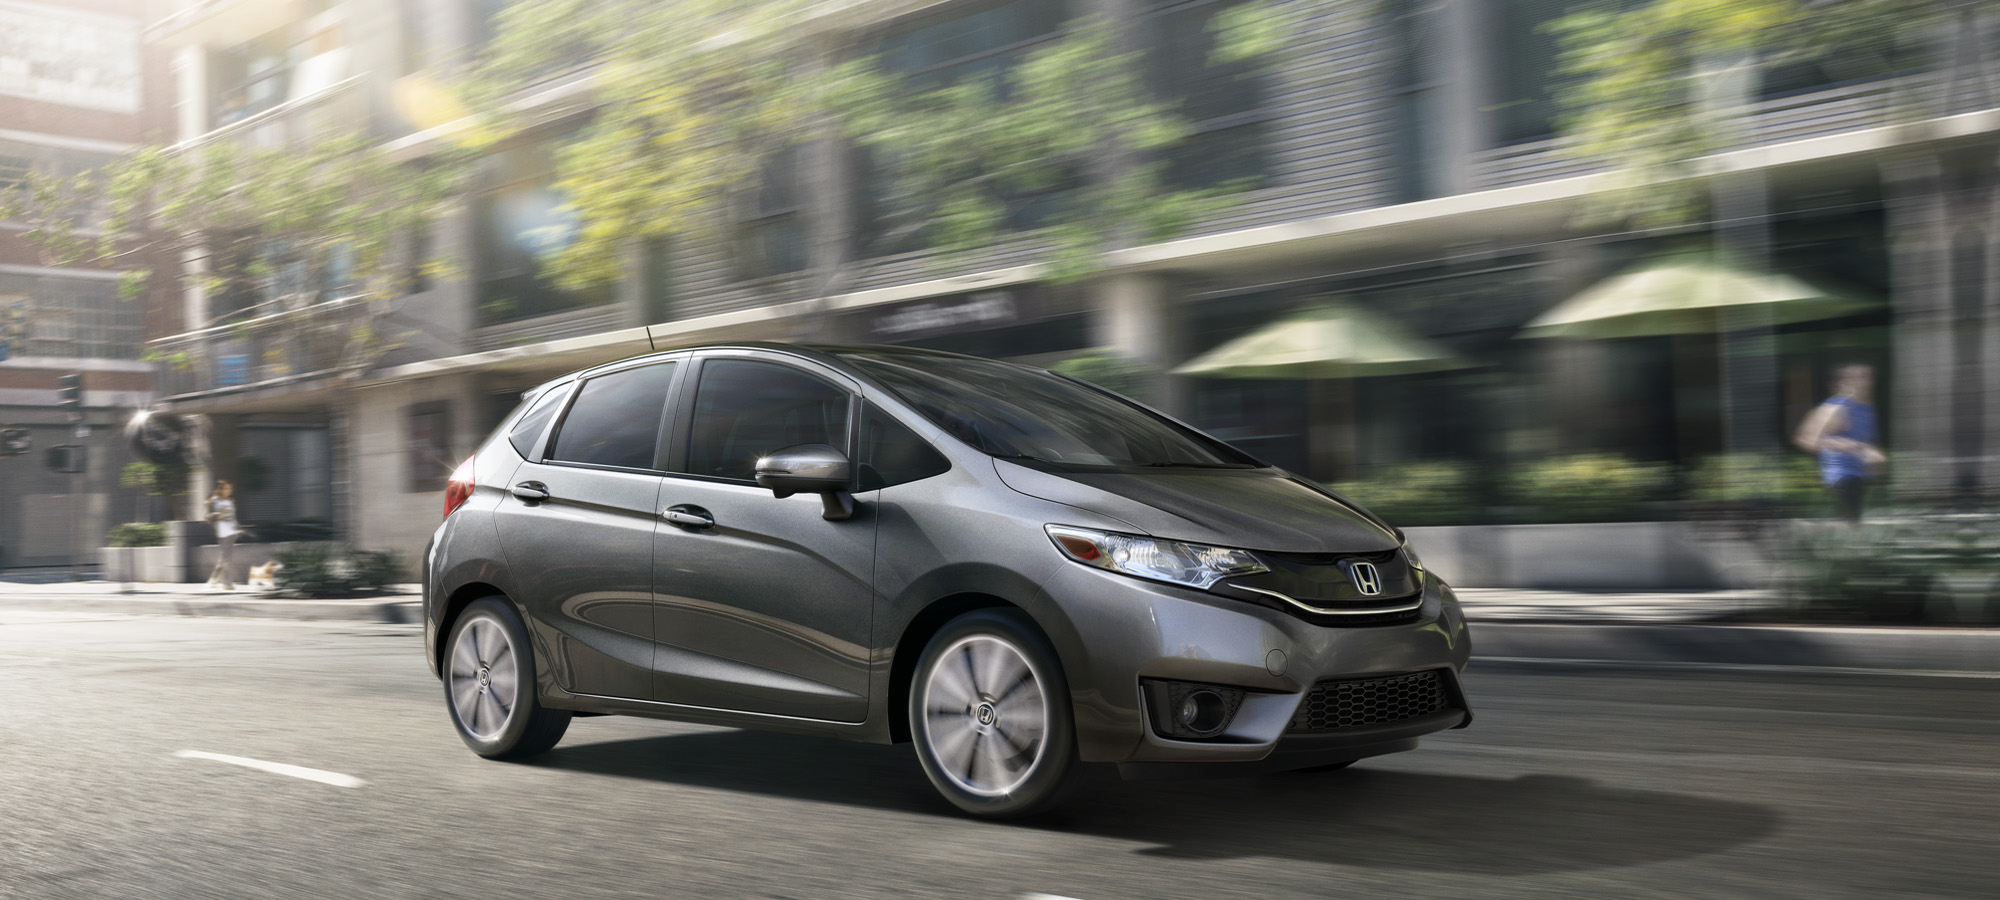 2016 Honda Fit For Sale in Milwaukee, WI